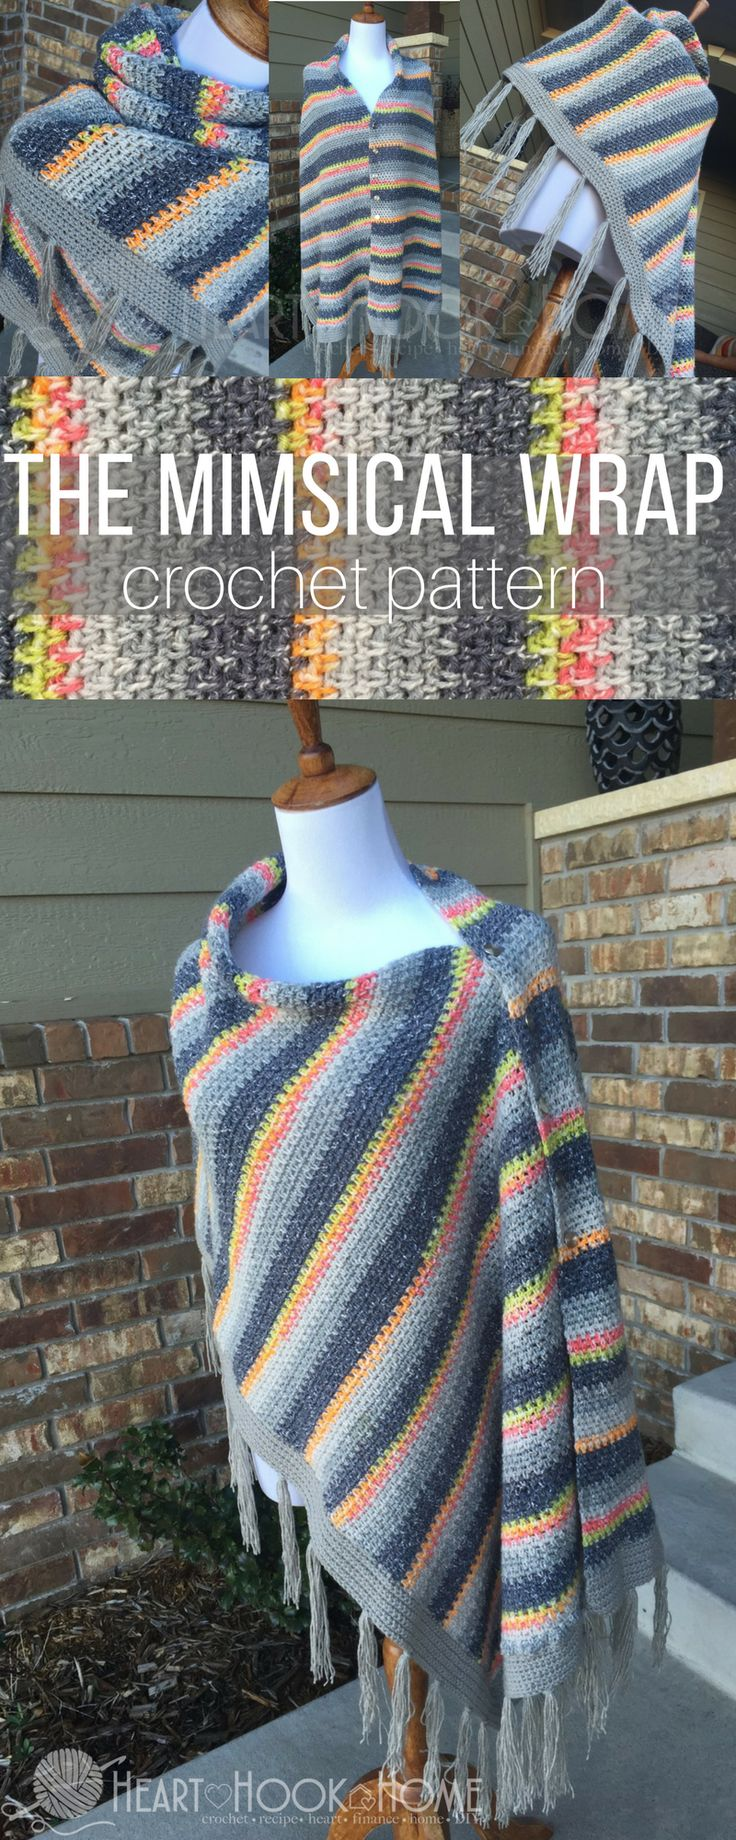 I'm a sucker for ponchos. That's a lie. I'm a sucker for wraps, shawls, ponchos, chunky scarves... the Mimsical Wrap crochet pattern to the rescue!